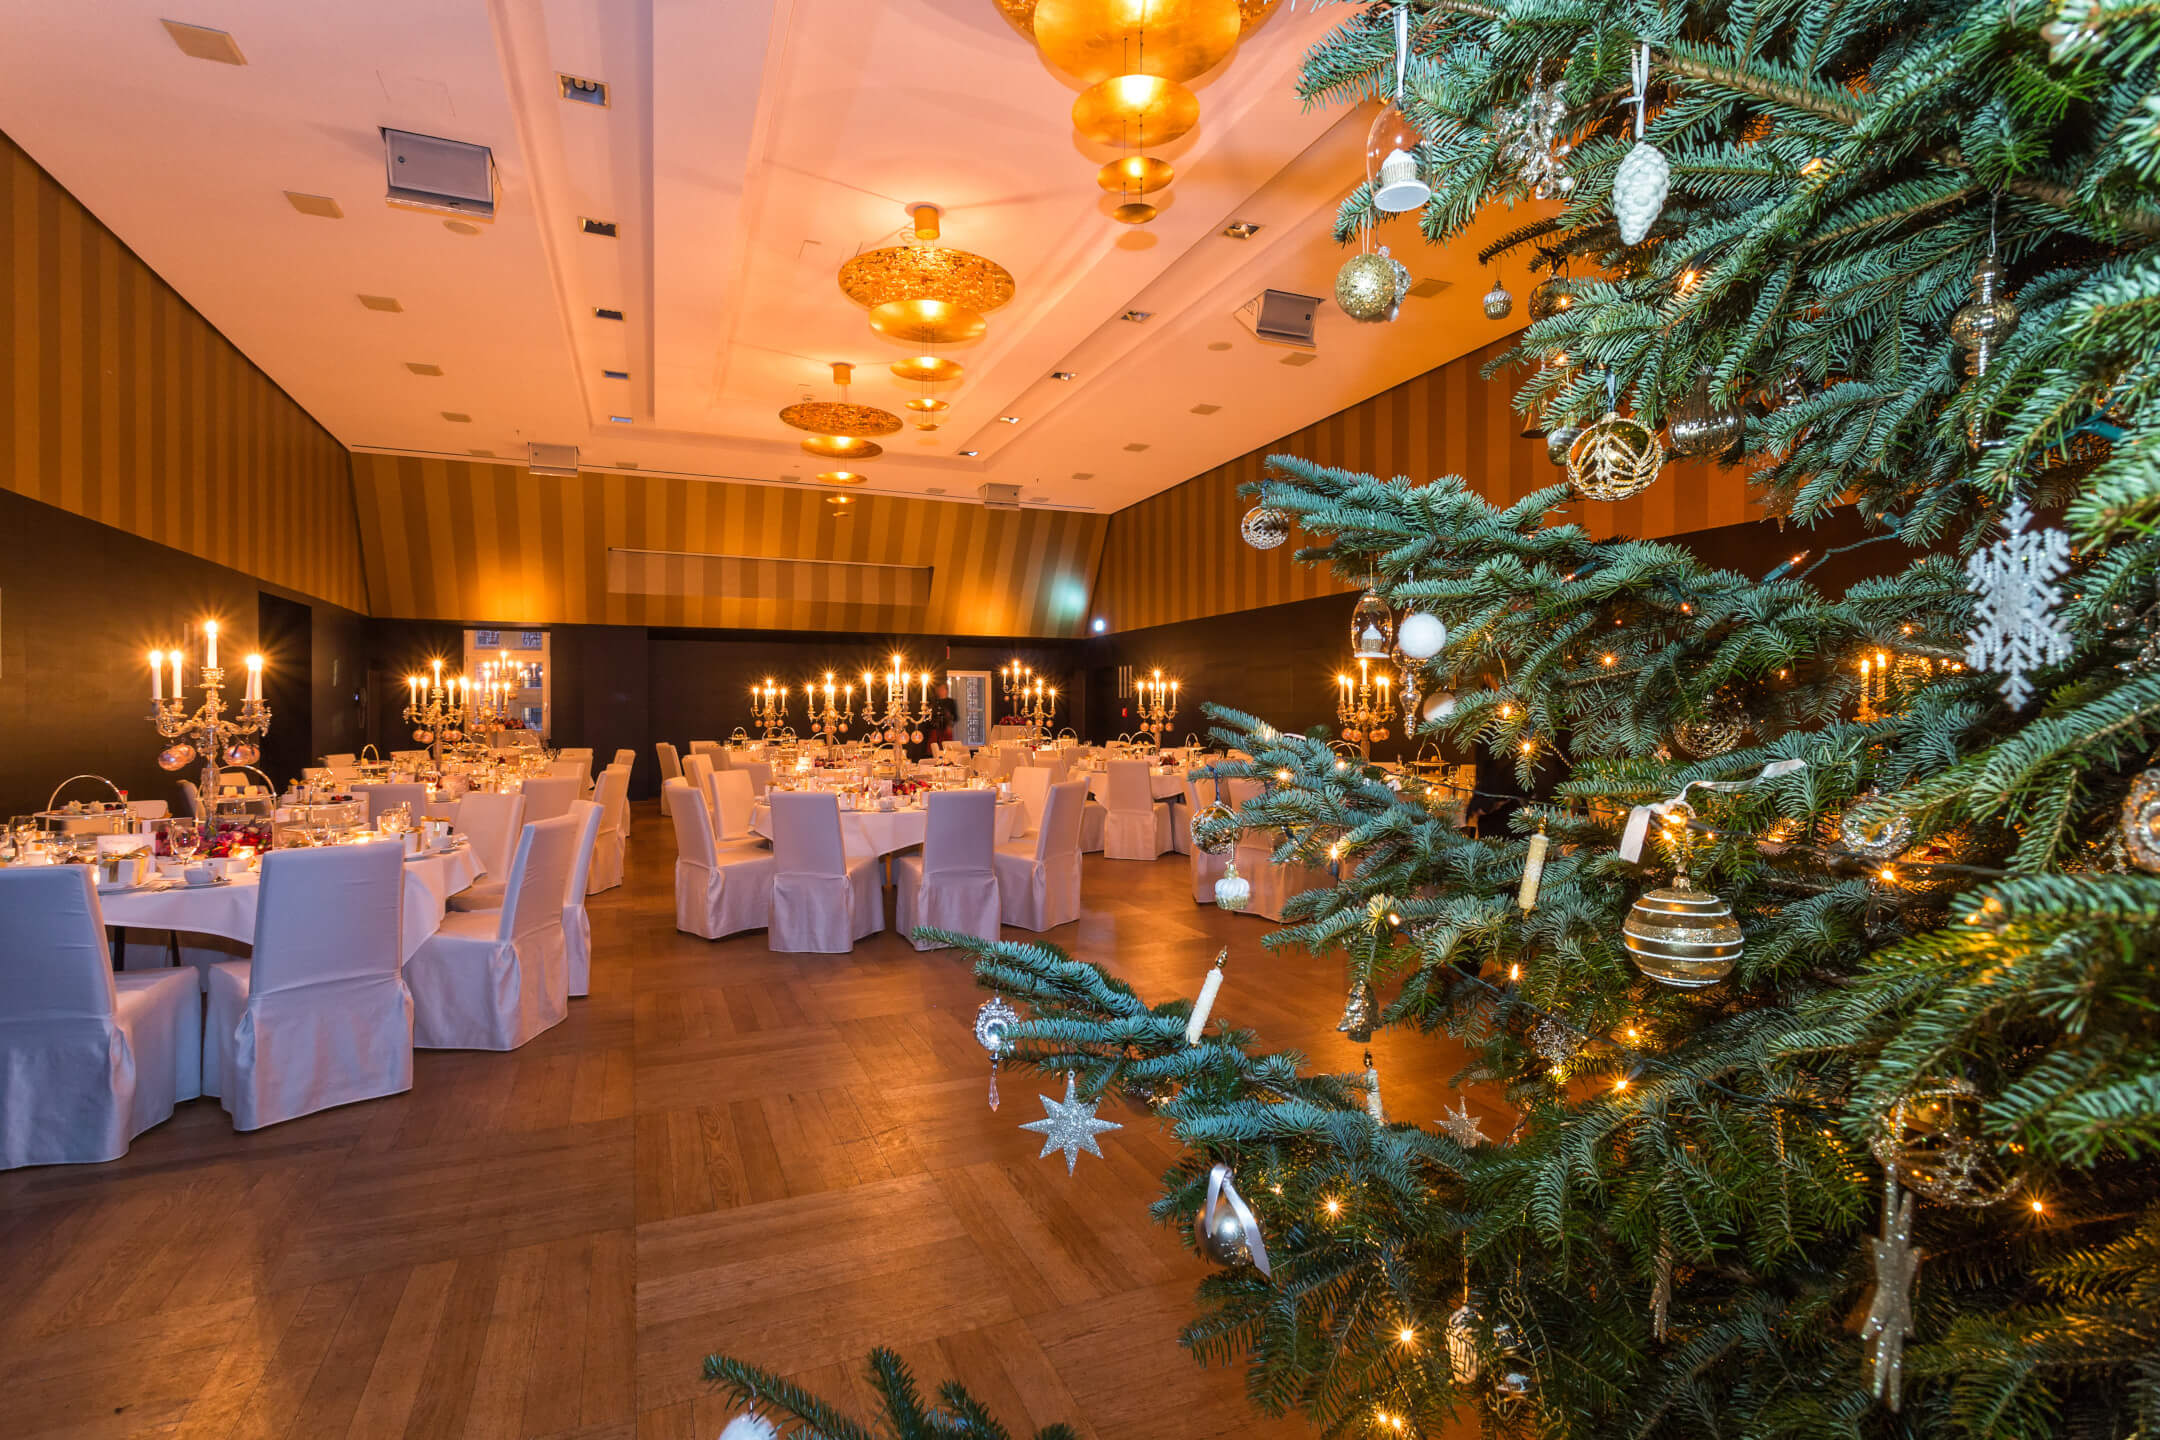 Goldener Saal with christmastree